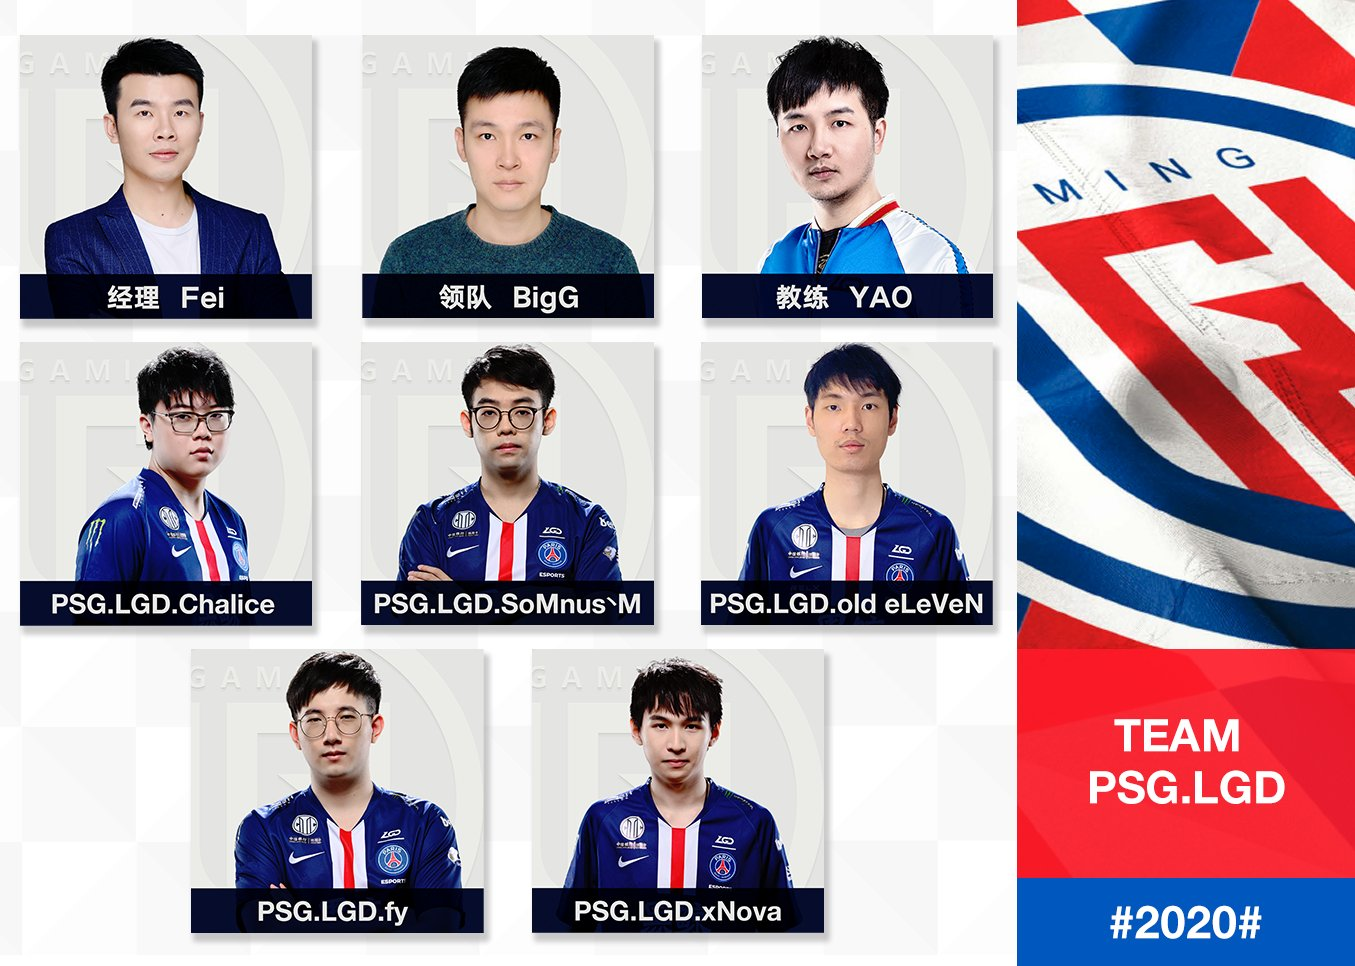 Lgd Gaming On Twitter Official Announcement Psg Lgd Dota 2 1 Yang Old Eleven Wei Will Be On Loan From Ehomecn To Lgd Playing As Pos 3 2 Yang Chalice Shenyi To